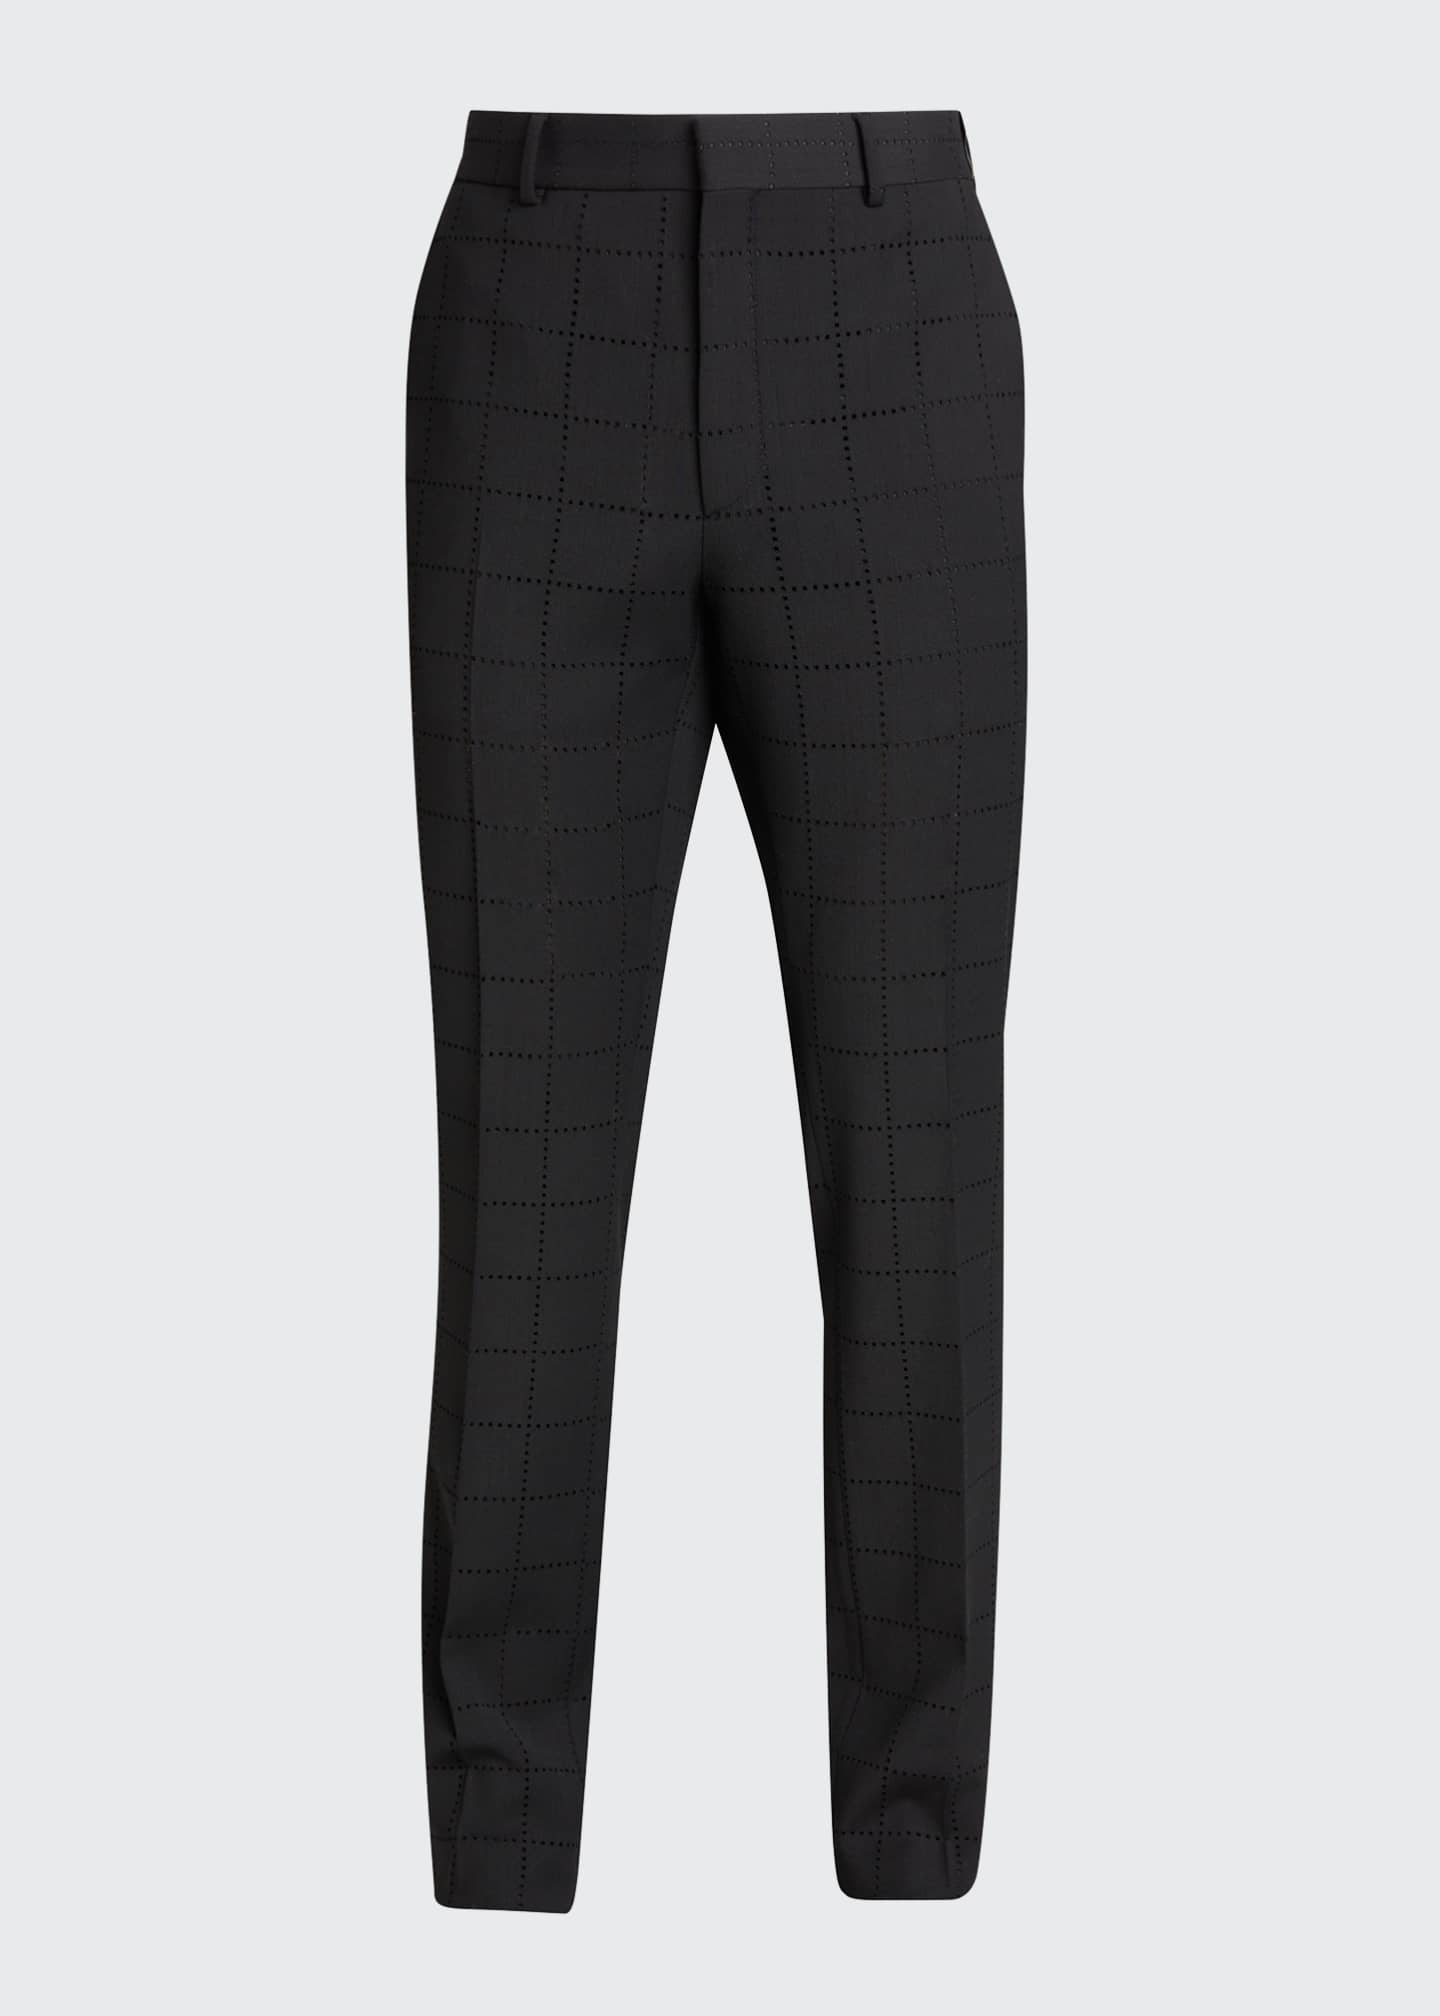 Image 5 of 5: Men's Punched Squares Dress Pants